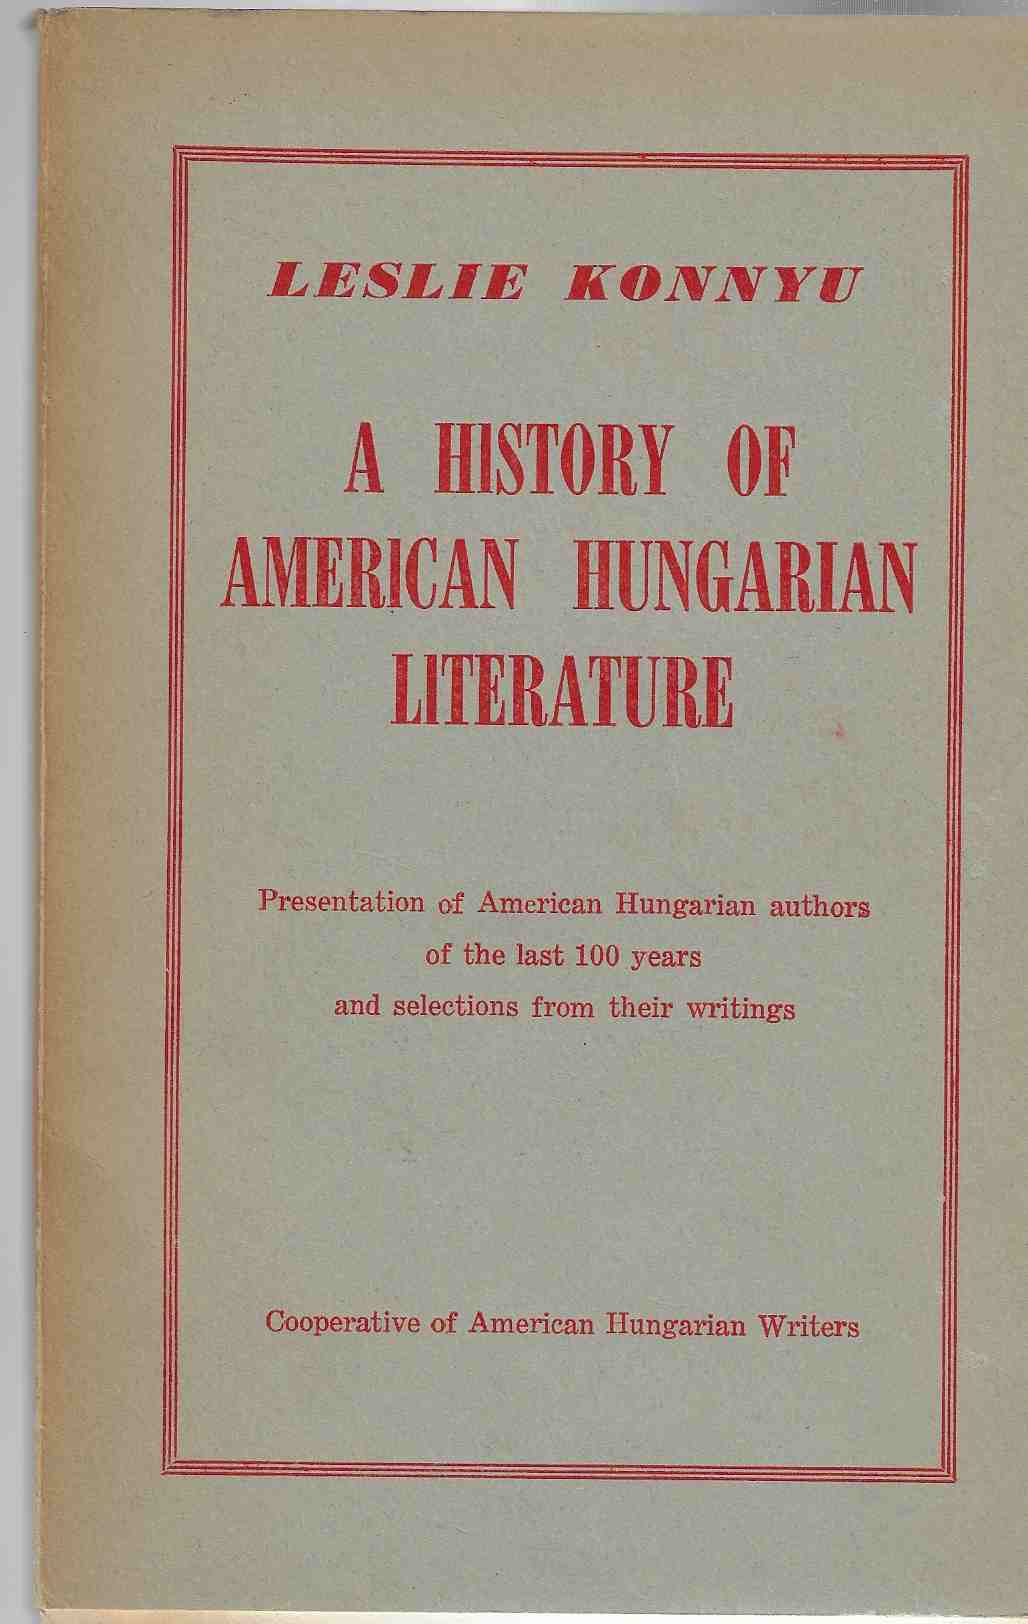 Image for A History of American Hungarian Literature. Presentation of American Hungarian authors of the last 100 years and selections from their writings